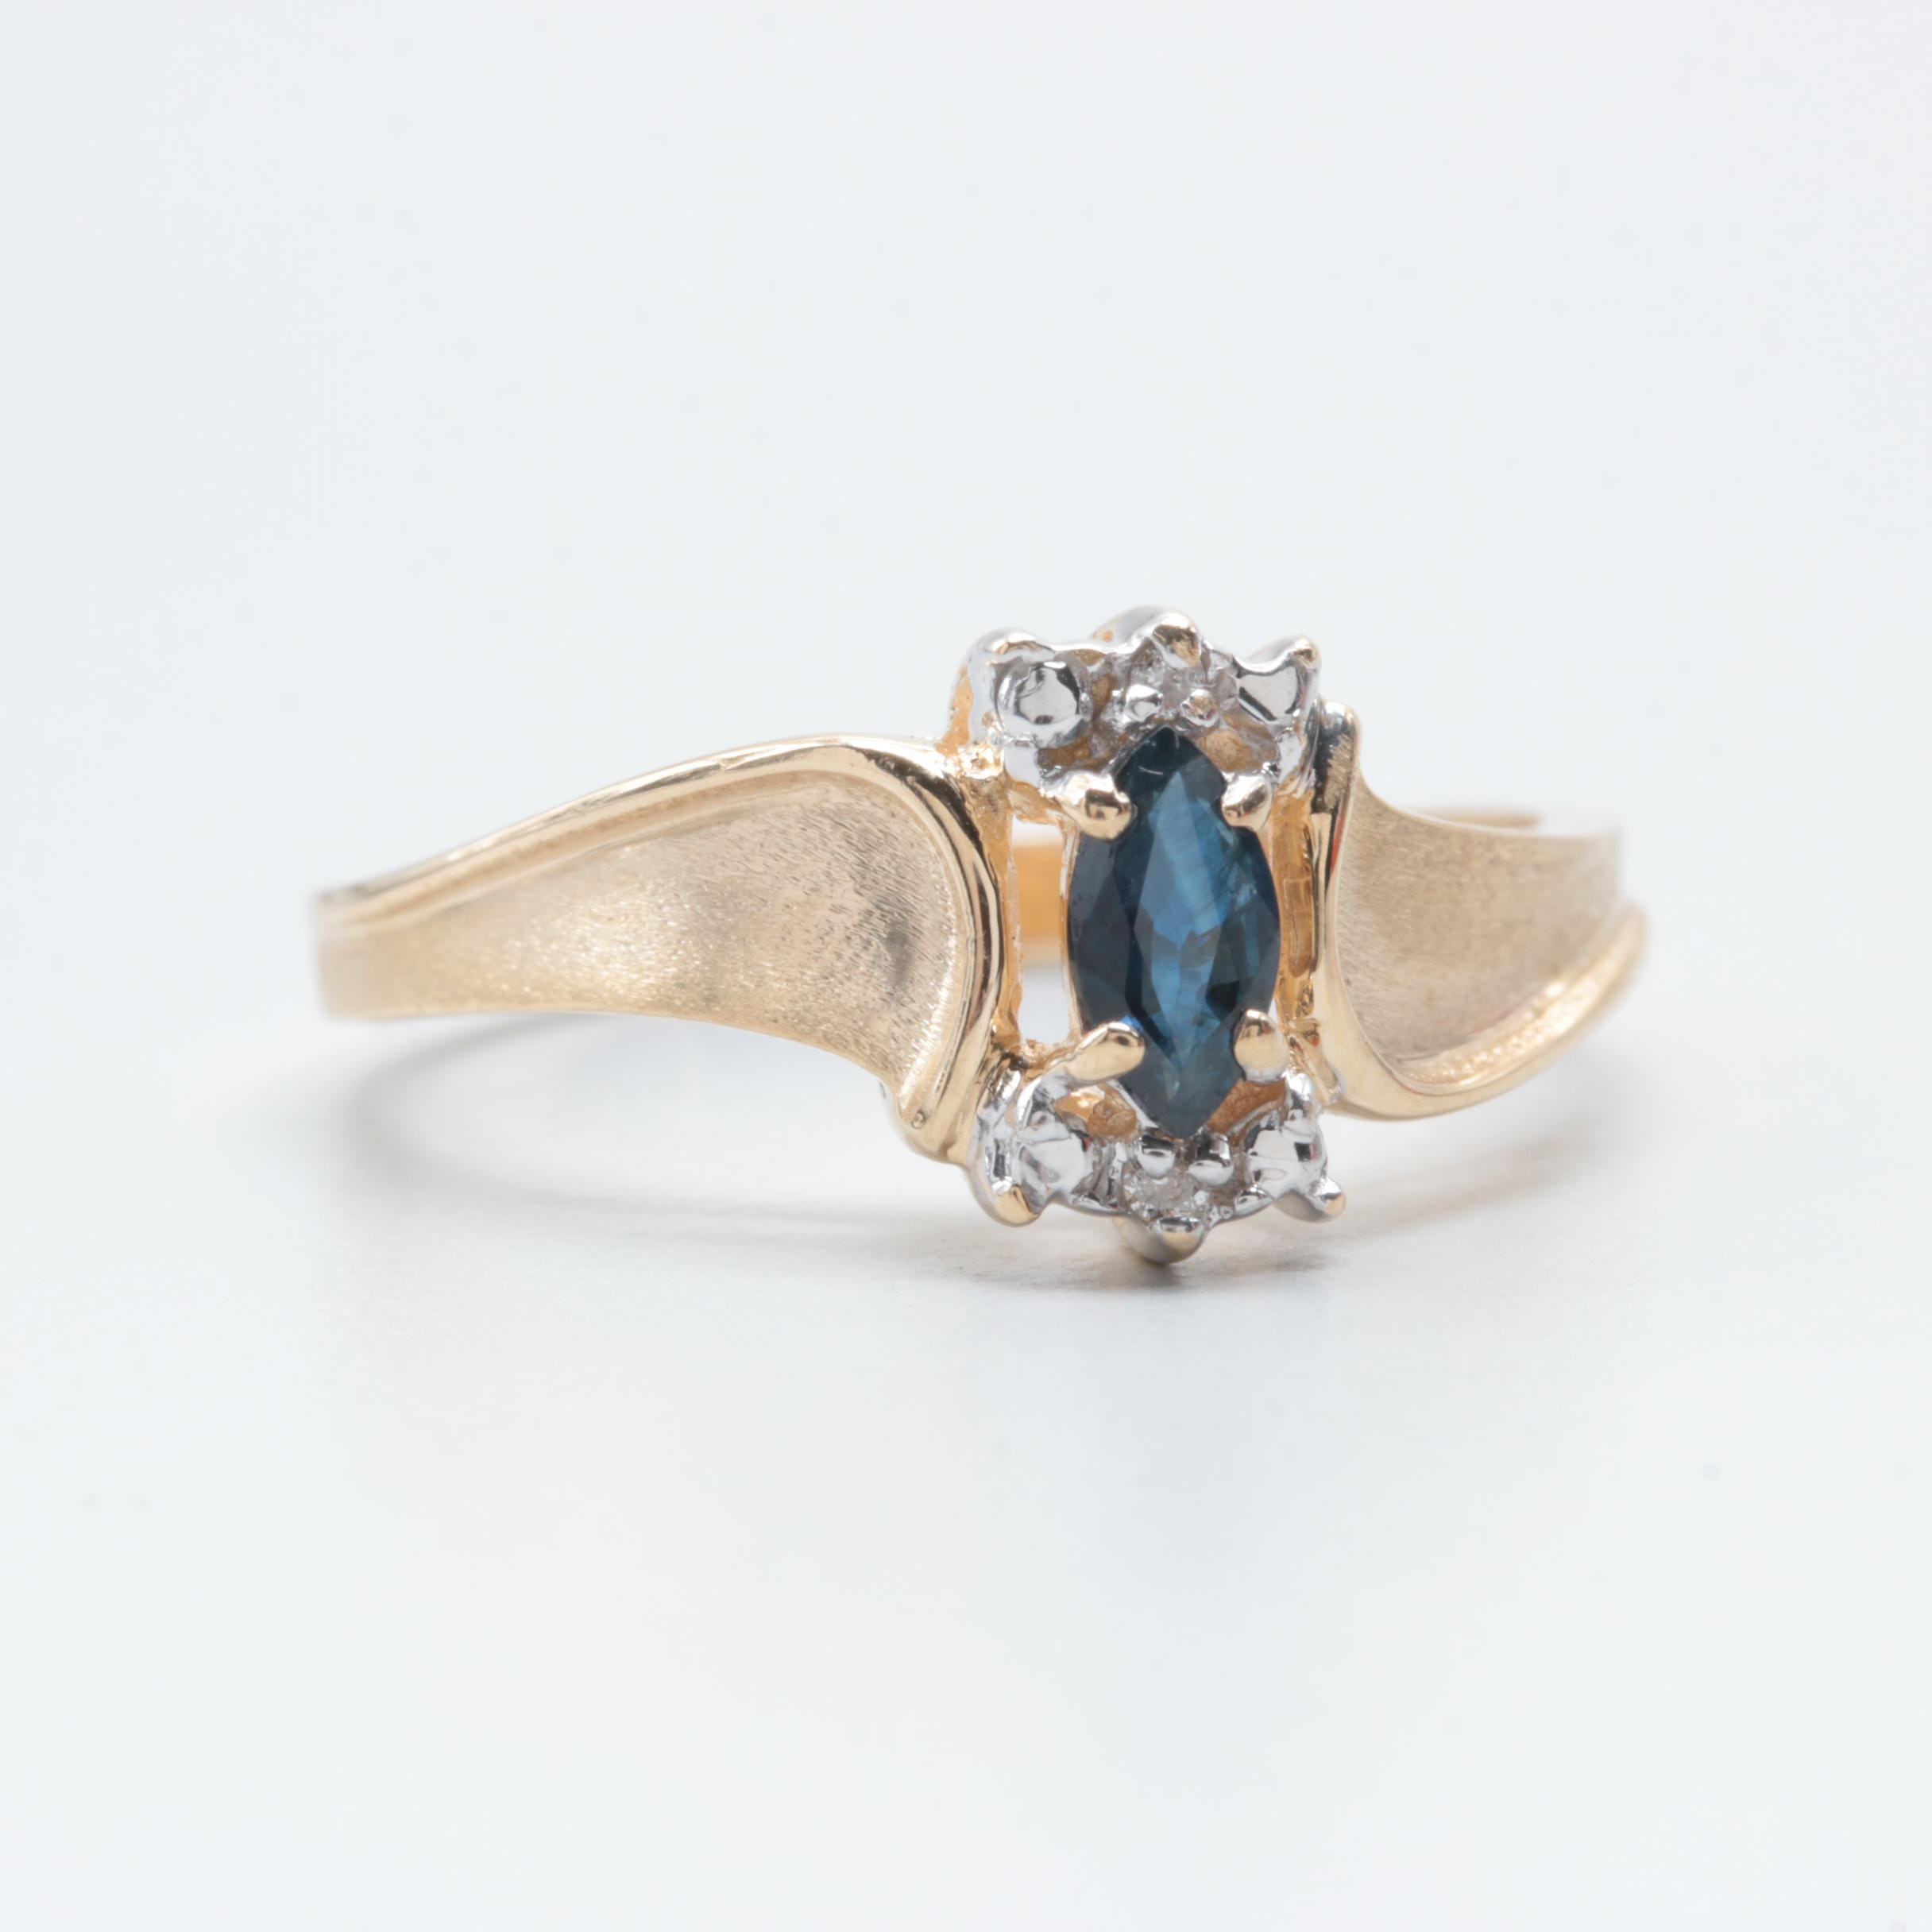 Baith 14K Yellow Gold Sapphire and Diamond Ring with White Gold Accent